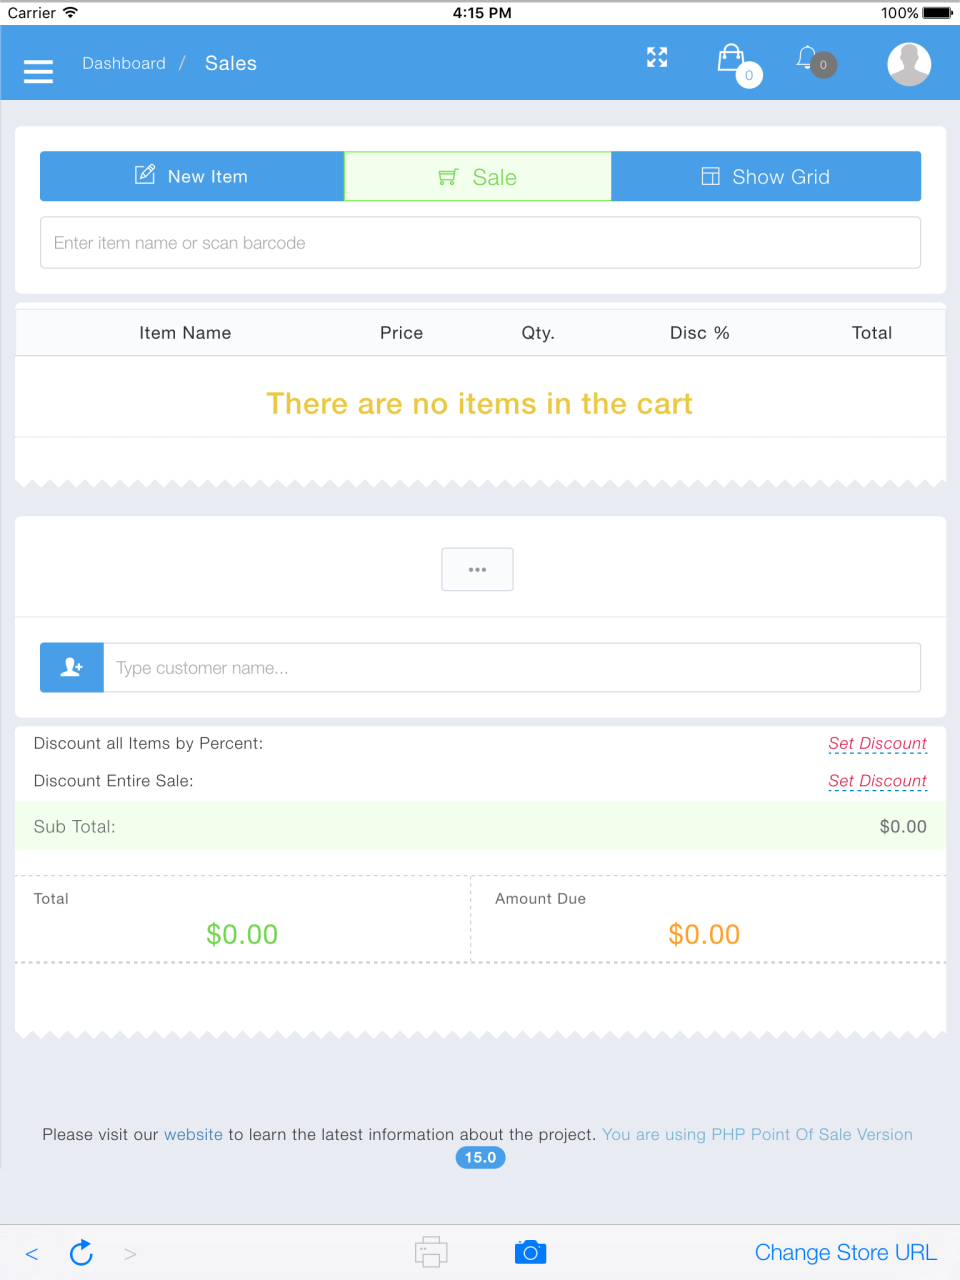 Sales screen for multiple items that calculate discounts and promotions